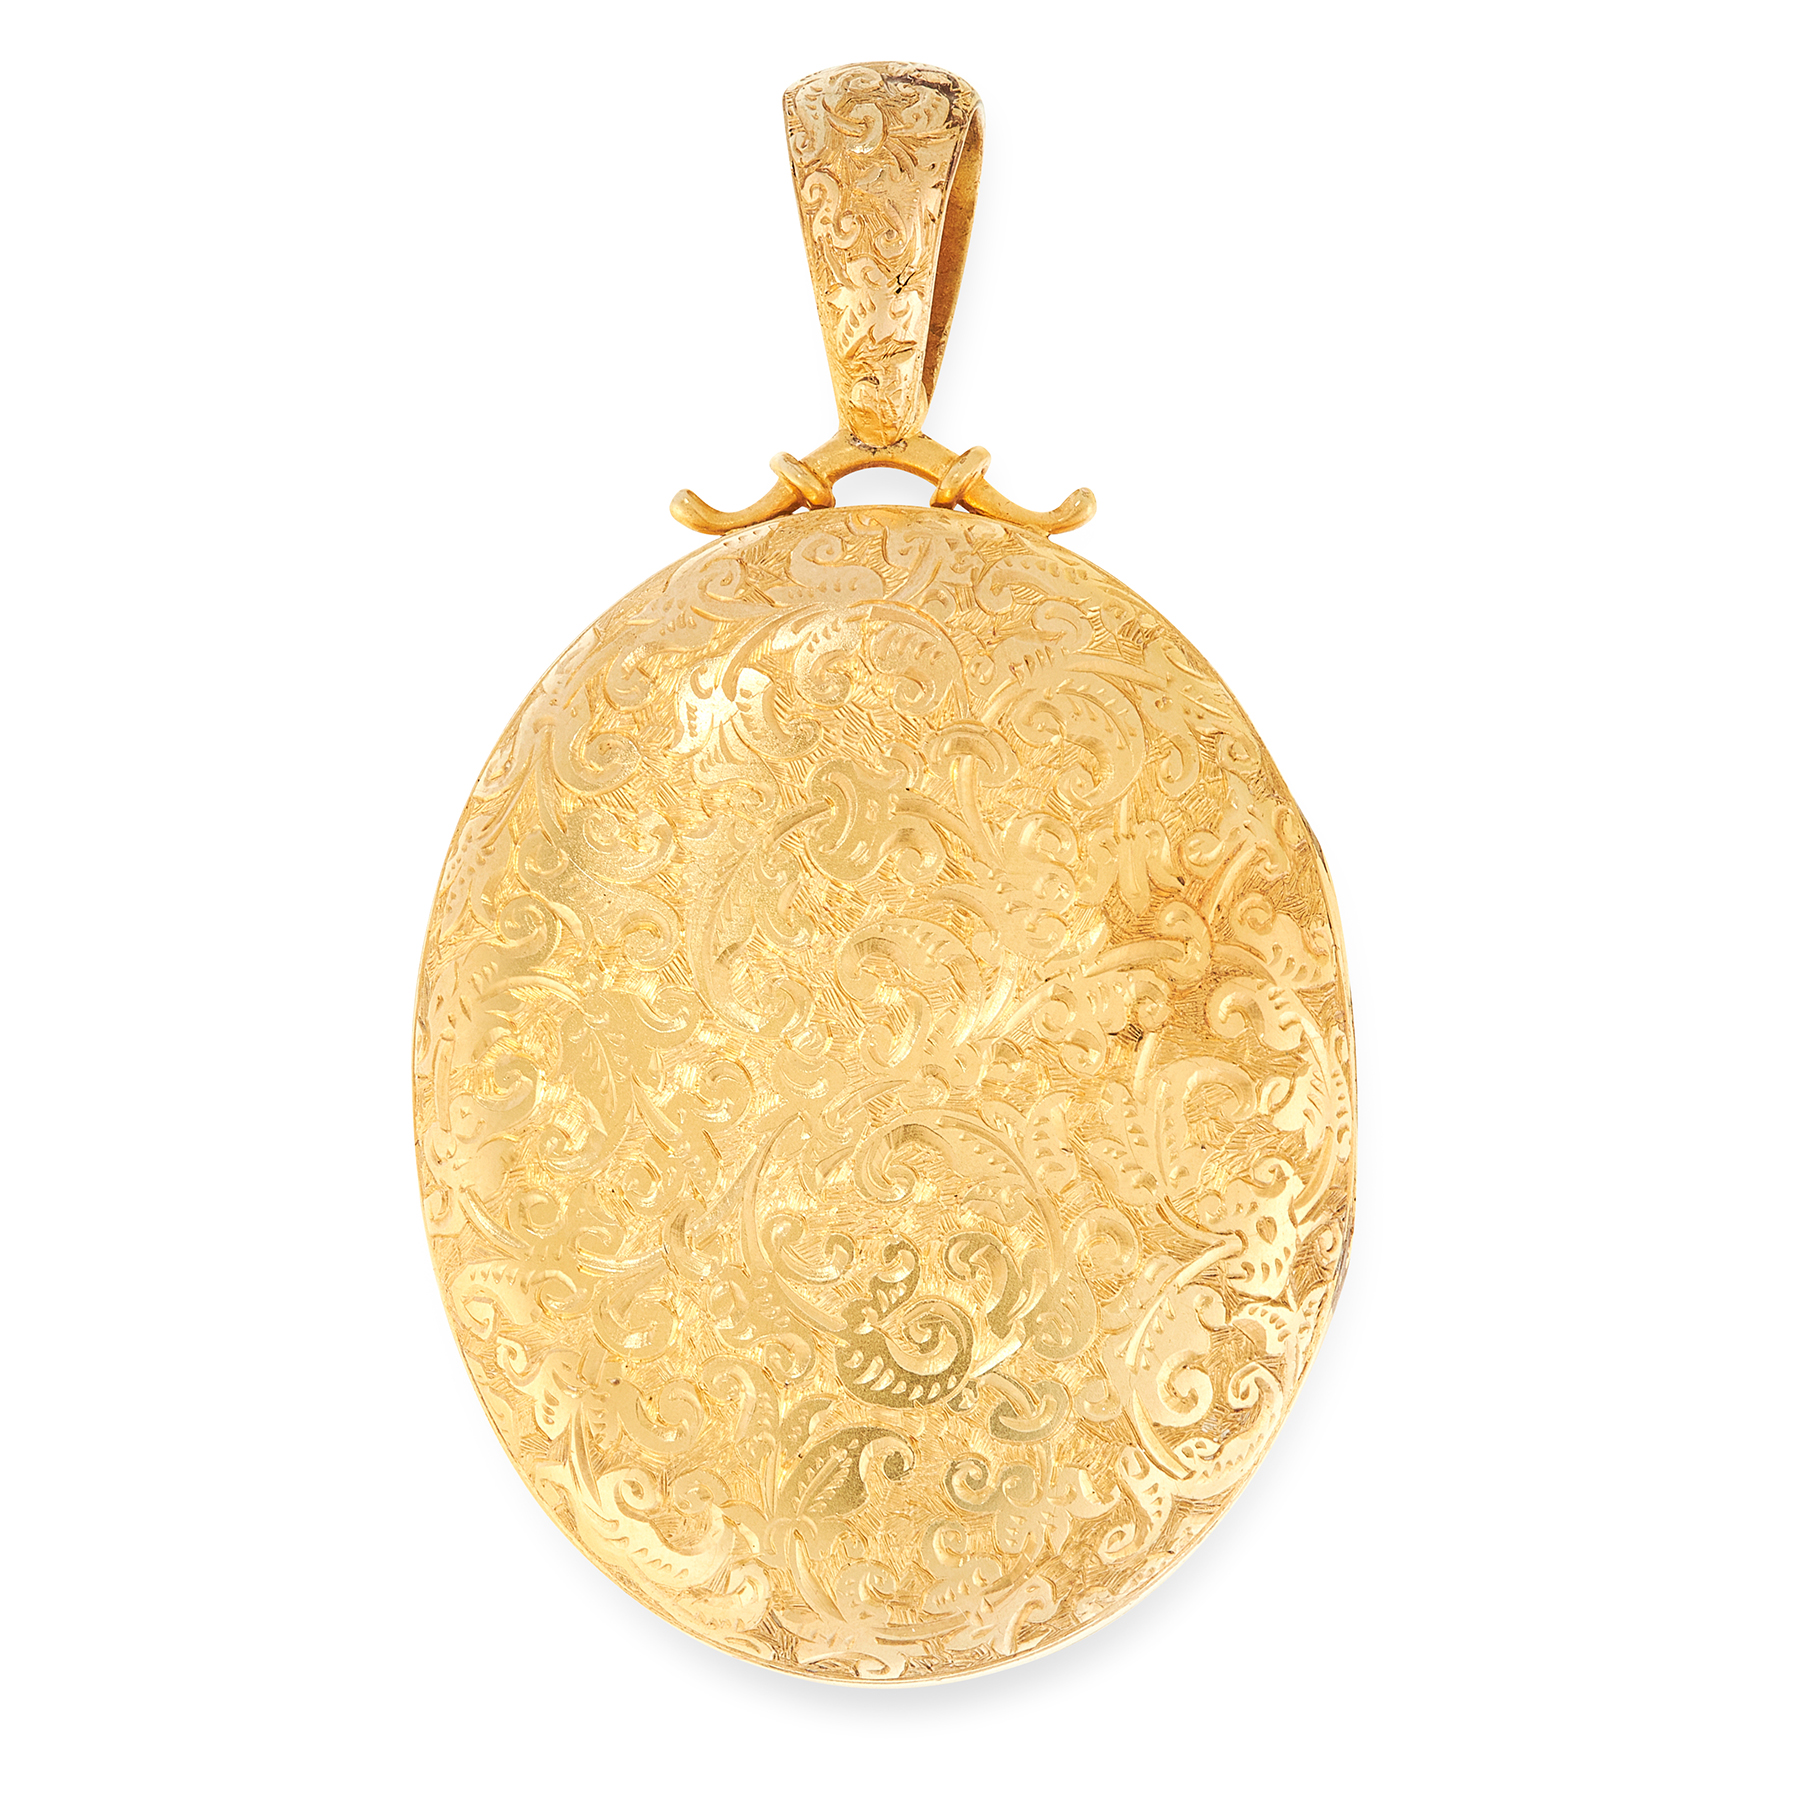 AN ANTIQUE HAIRWORK MOURNING LOCKET PENDANT, 19TH CENTURY in yellow gold, the oval hinged body